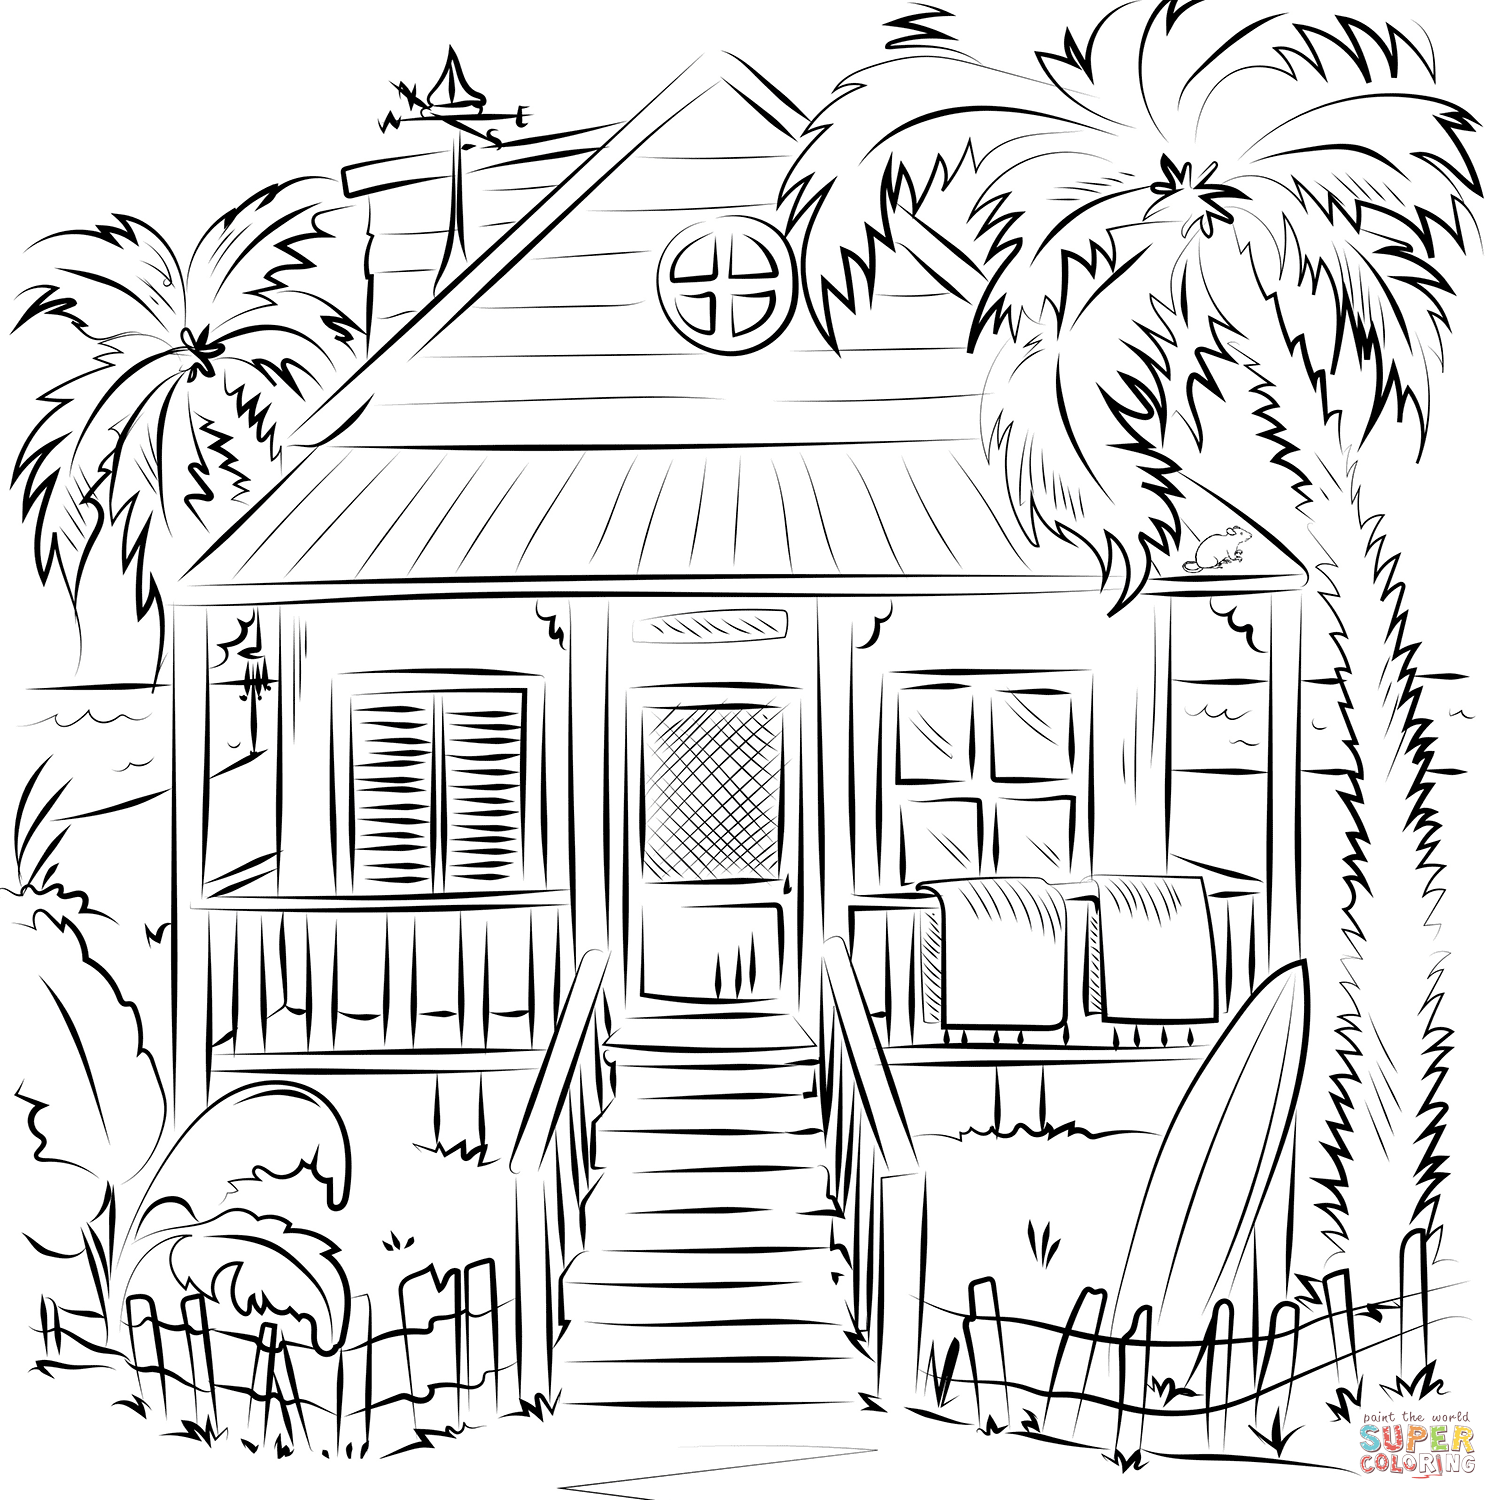 coloring houses beach house coloring page free printable coloring pages coloring houses